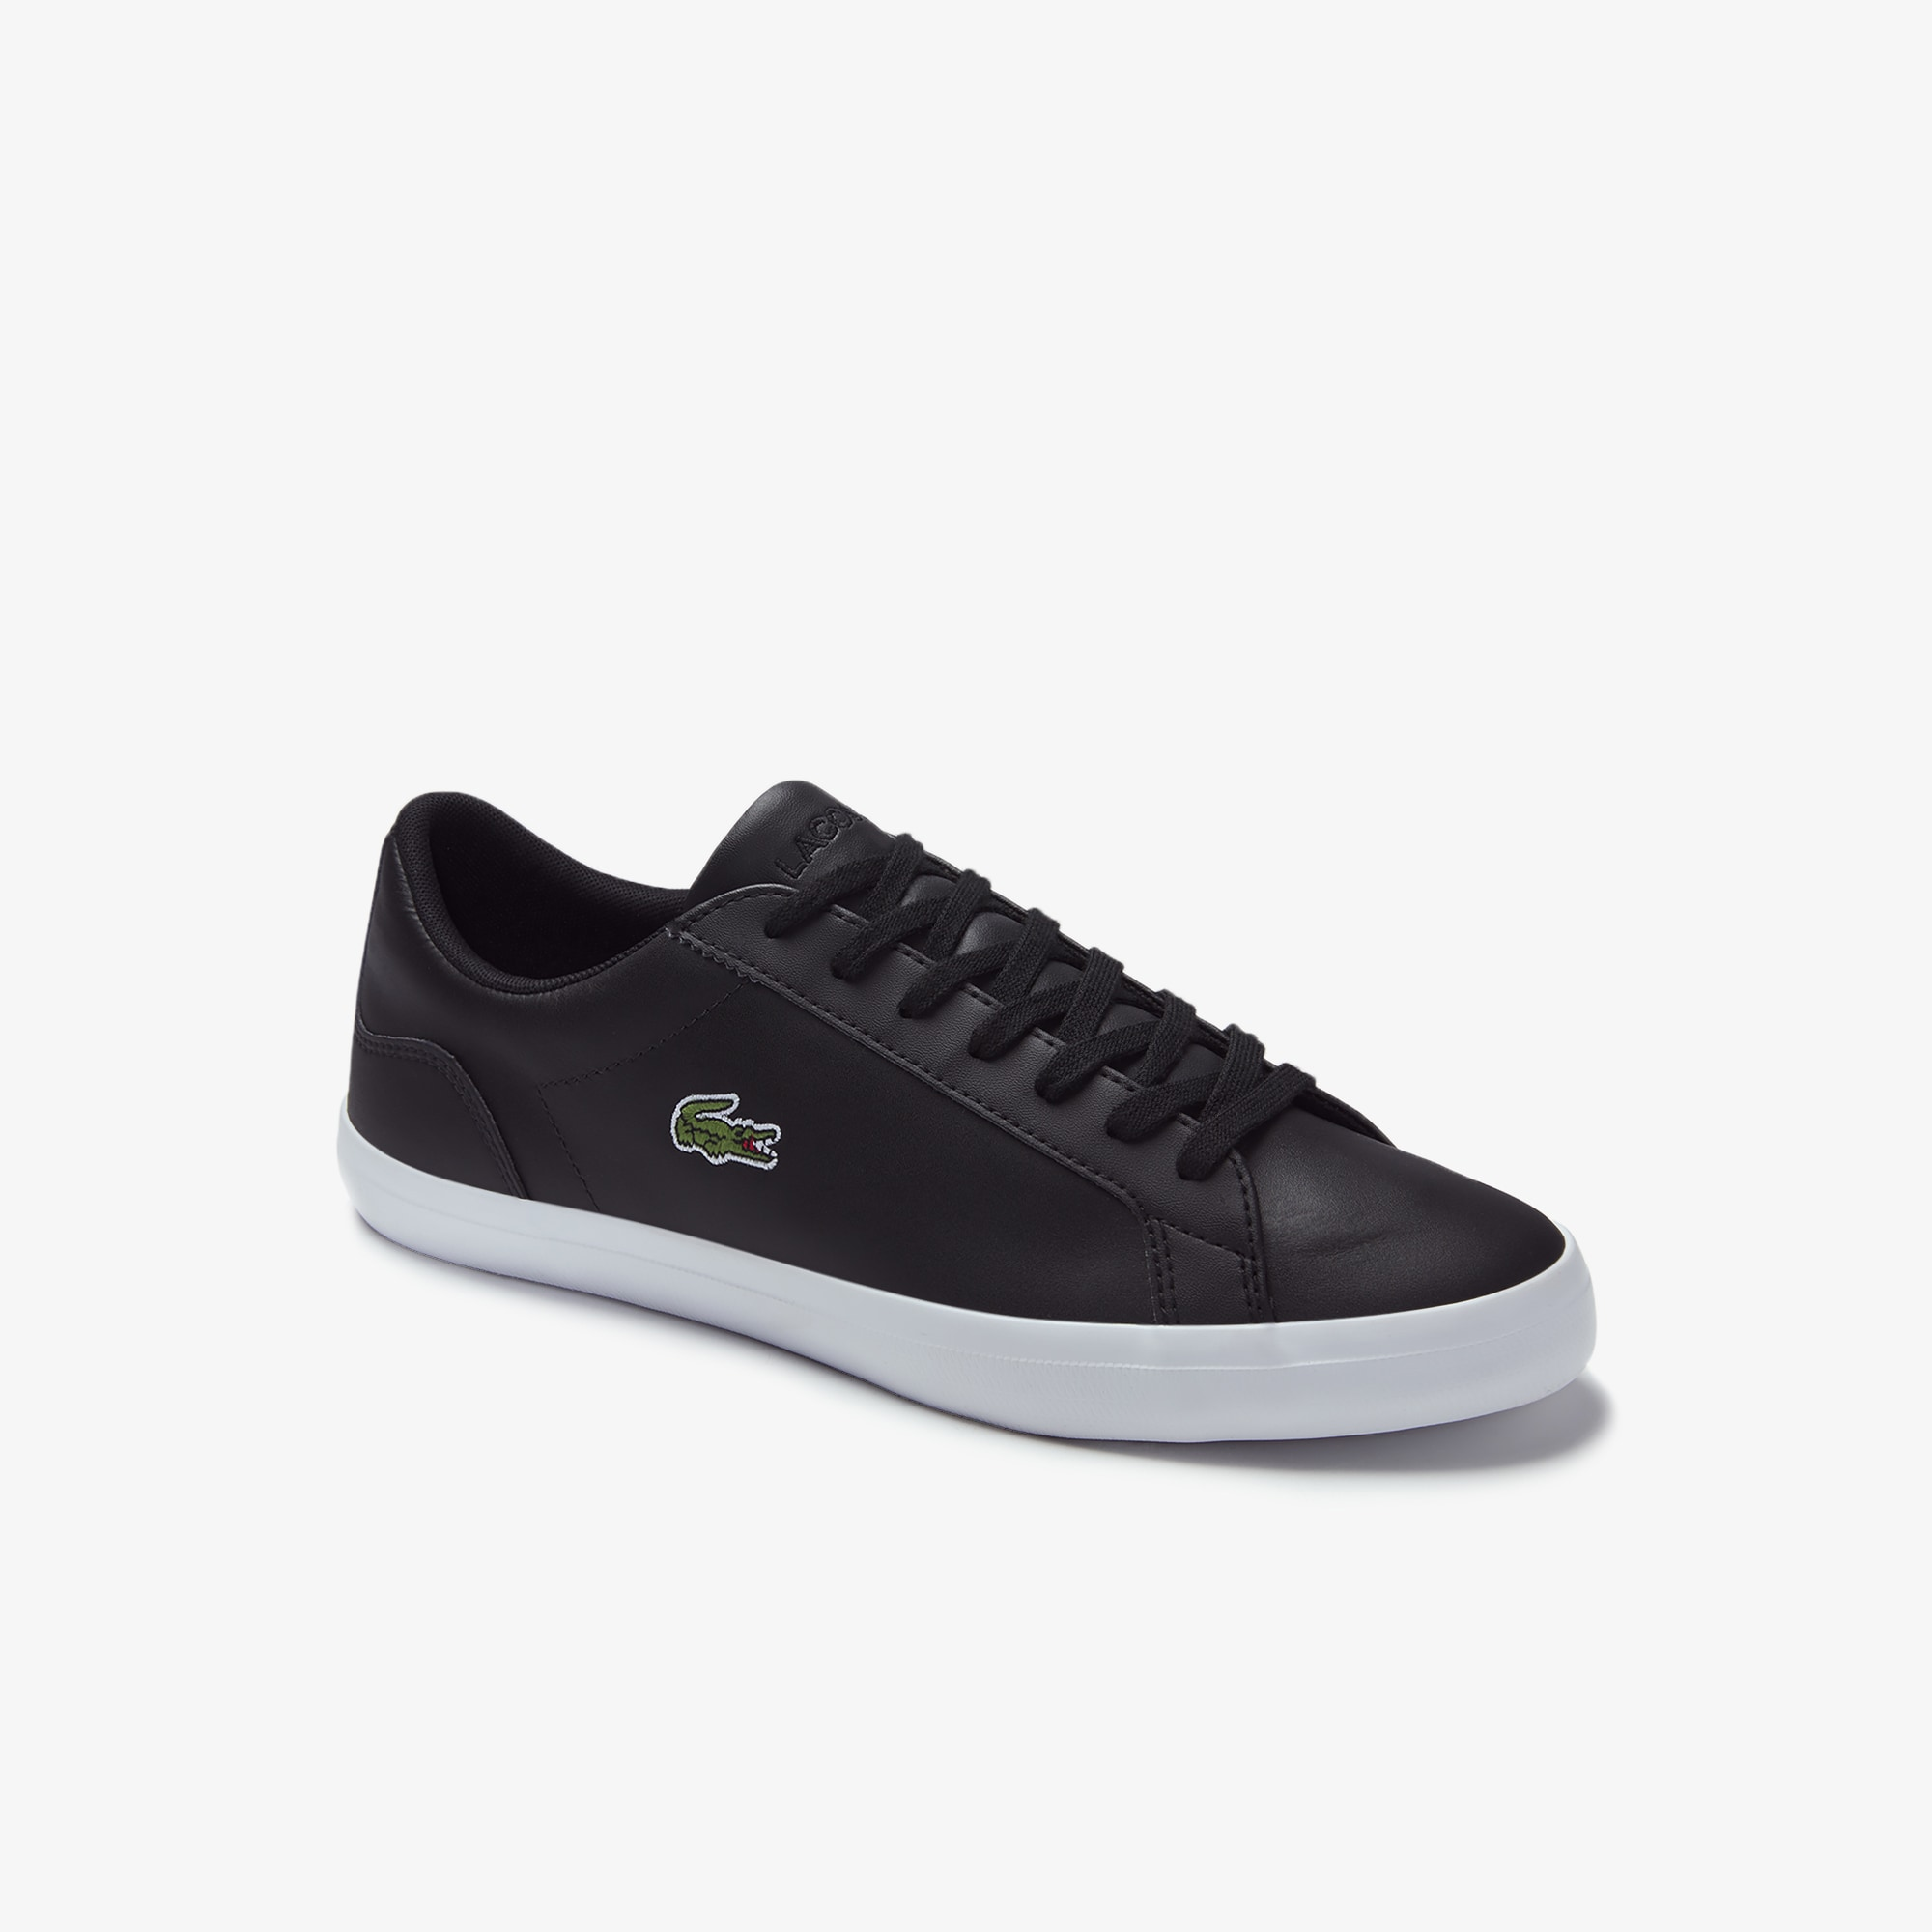 Sneakers Lerond in pelle monocolore